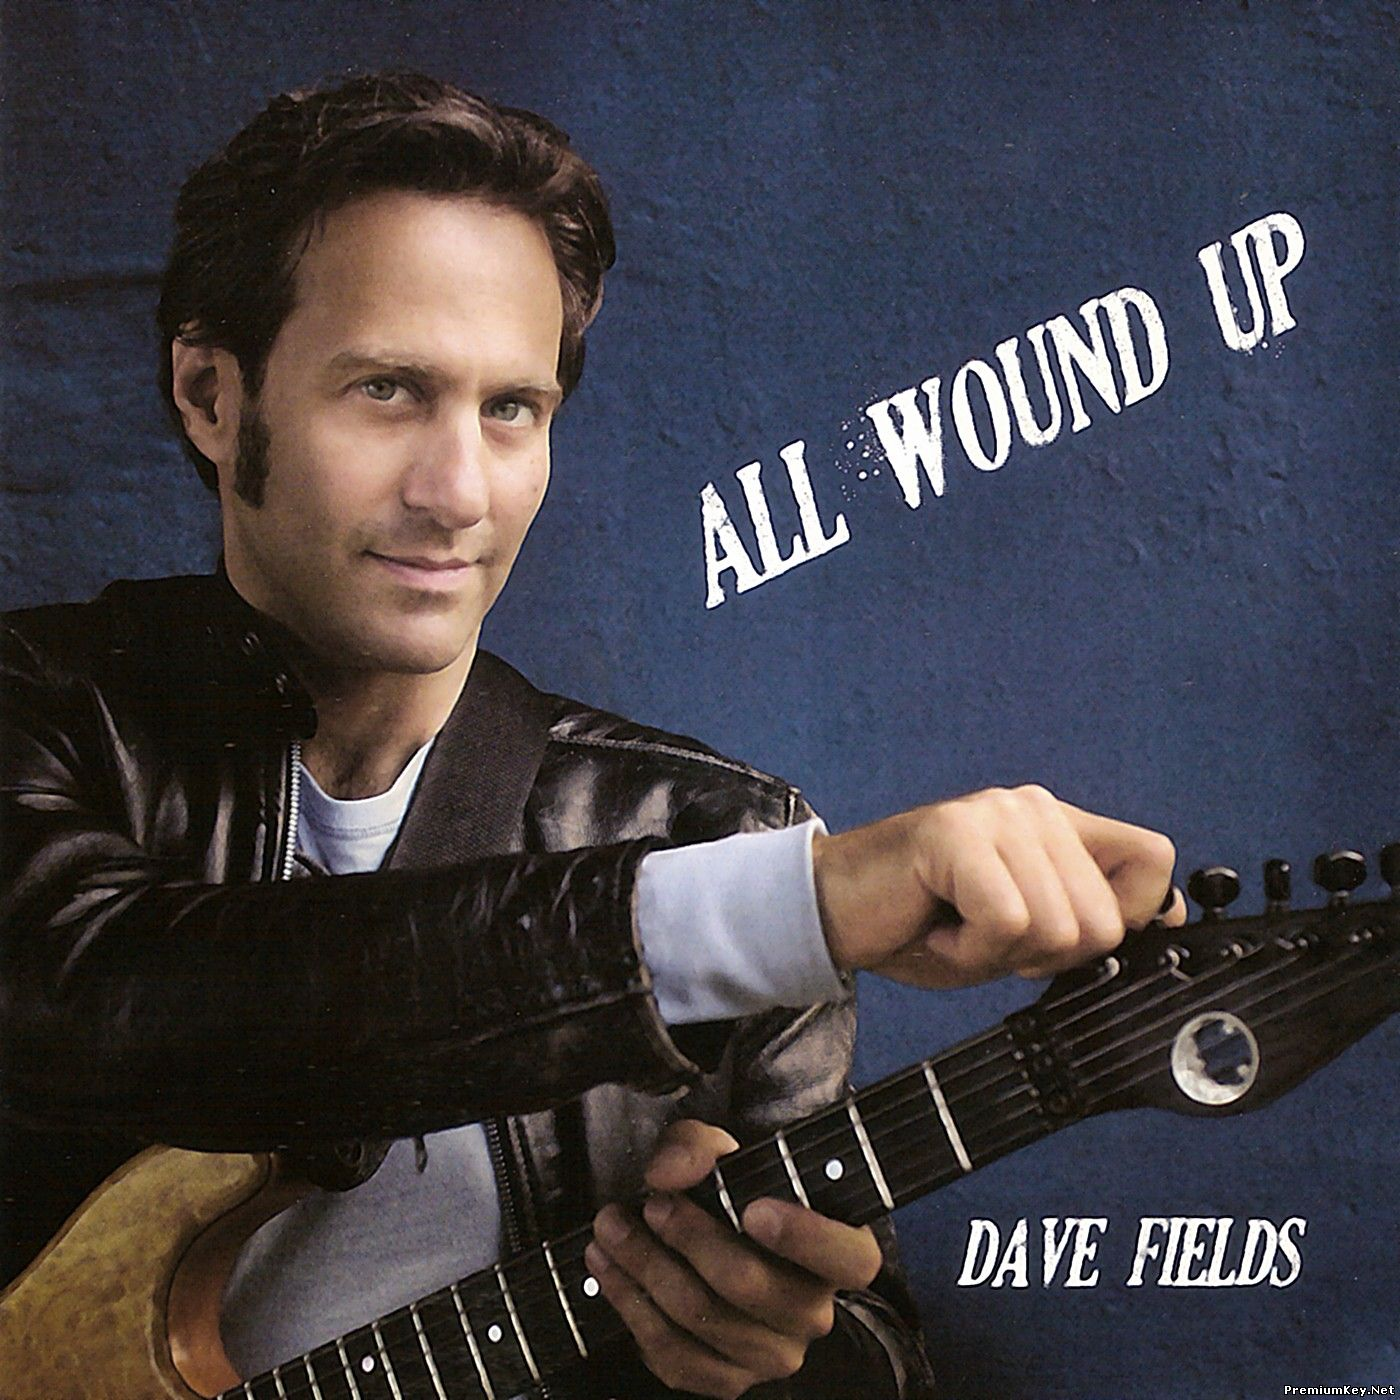 Dave Fields - All Wound Up (2008)